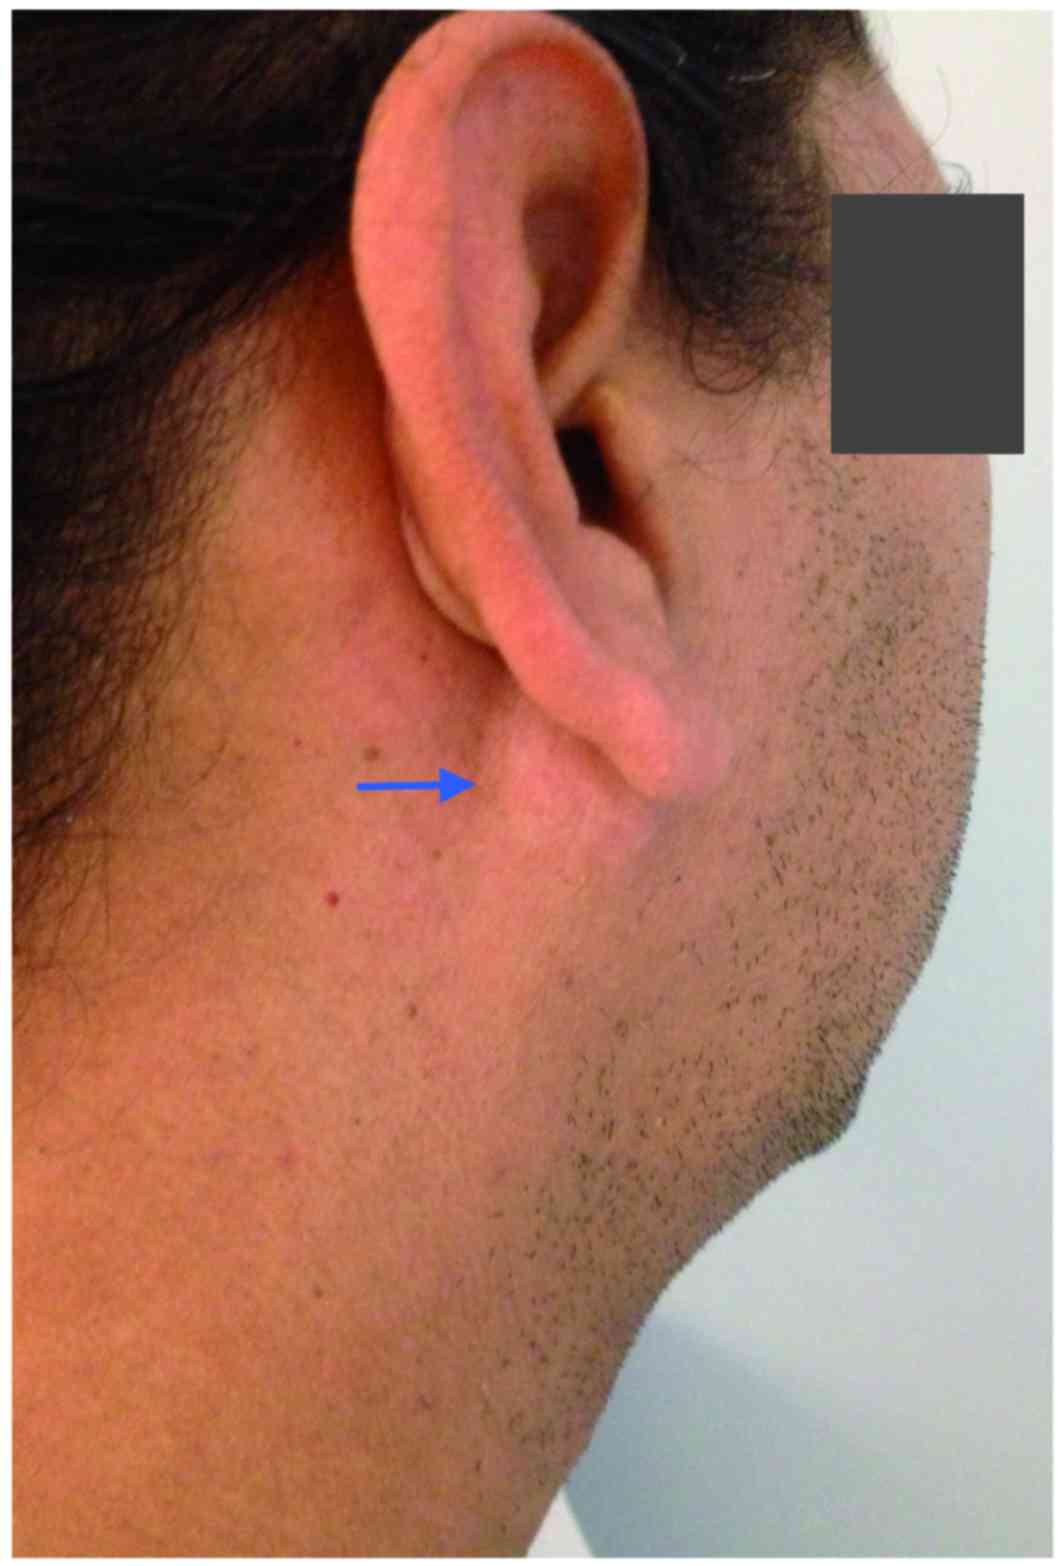 Primary Extraosseous Plasmacytoma Of The Parotid Gland A